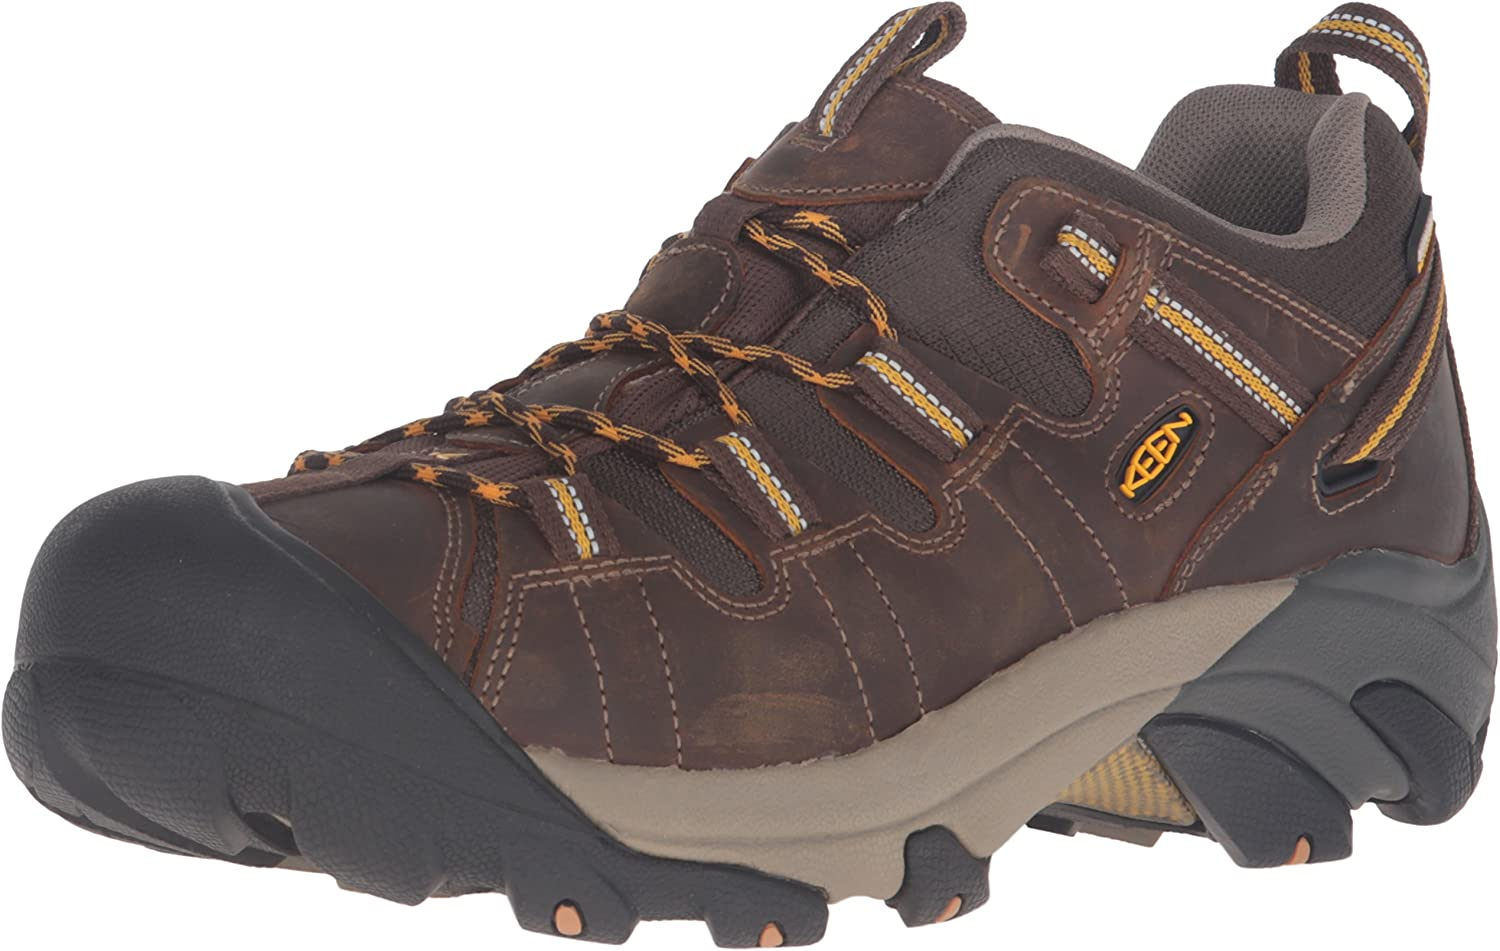 KEEN Men's Targhee II Hiking Shoe